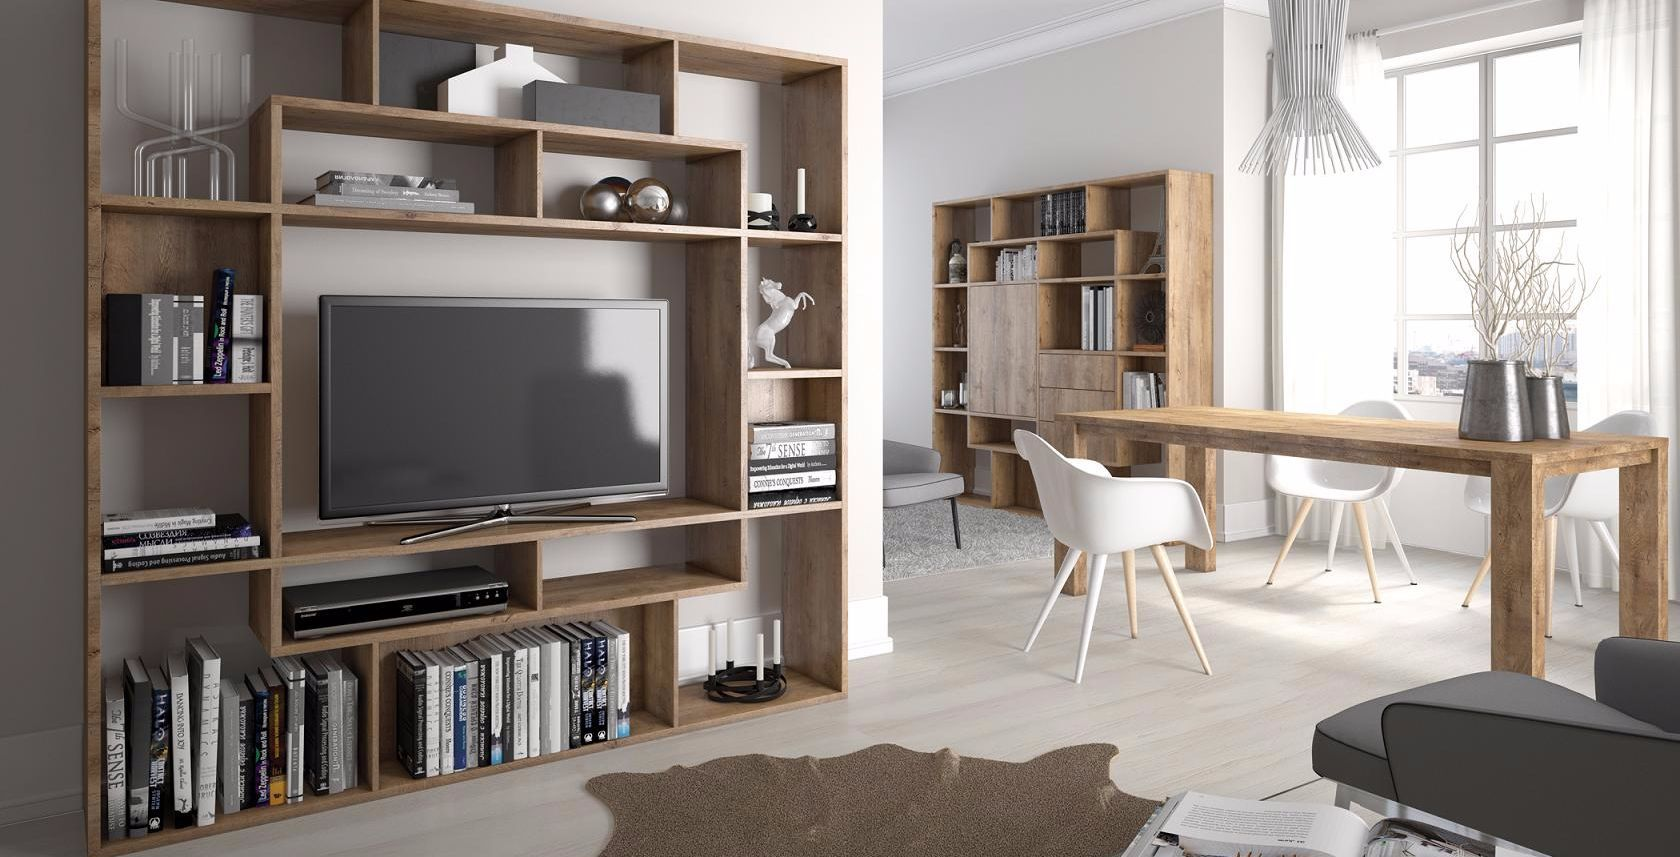 Living Room Furniture Edinburgh alano furniture range at m&m furniture in edinburgh | wall units